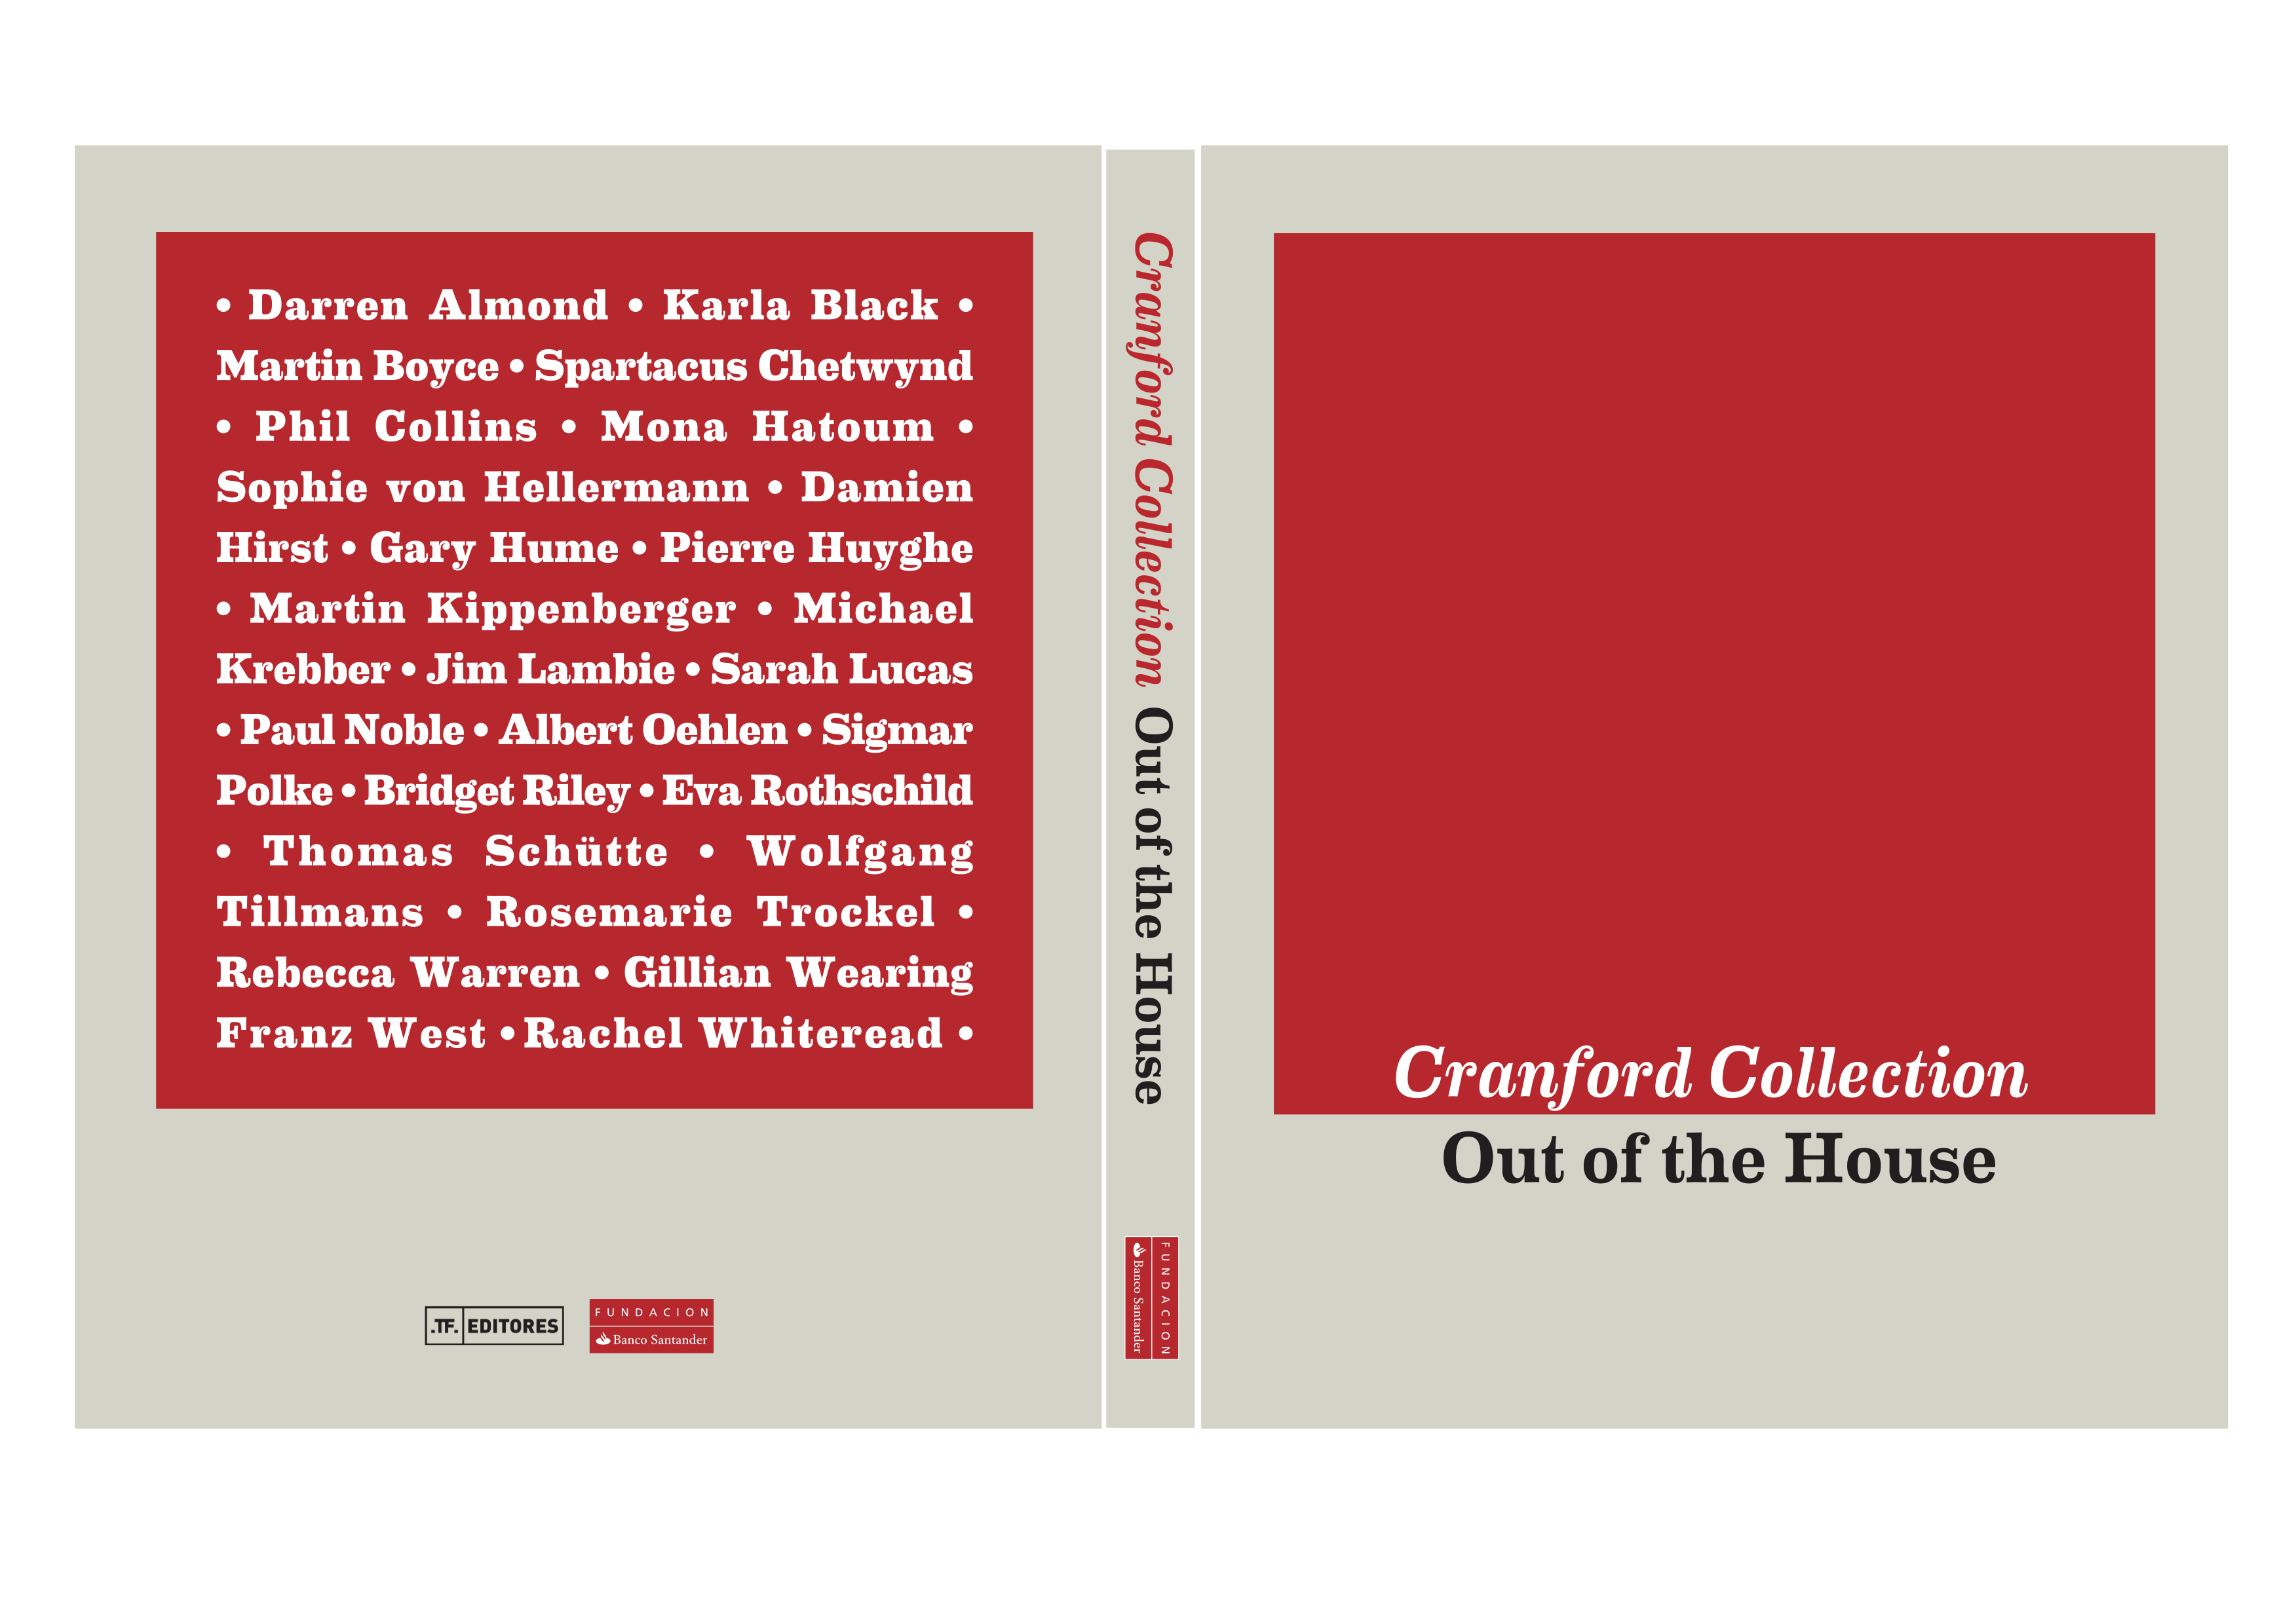 """Anne Pontégnie, """"Out of the House,"""" in: """"Cranford Collection. Out of the House"""". Madrid/London: Fundacion Banco Santander/Cranford Collection, 2013, p.12-13."""